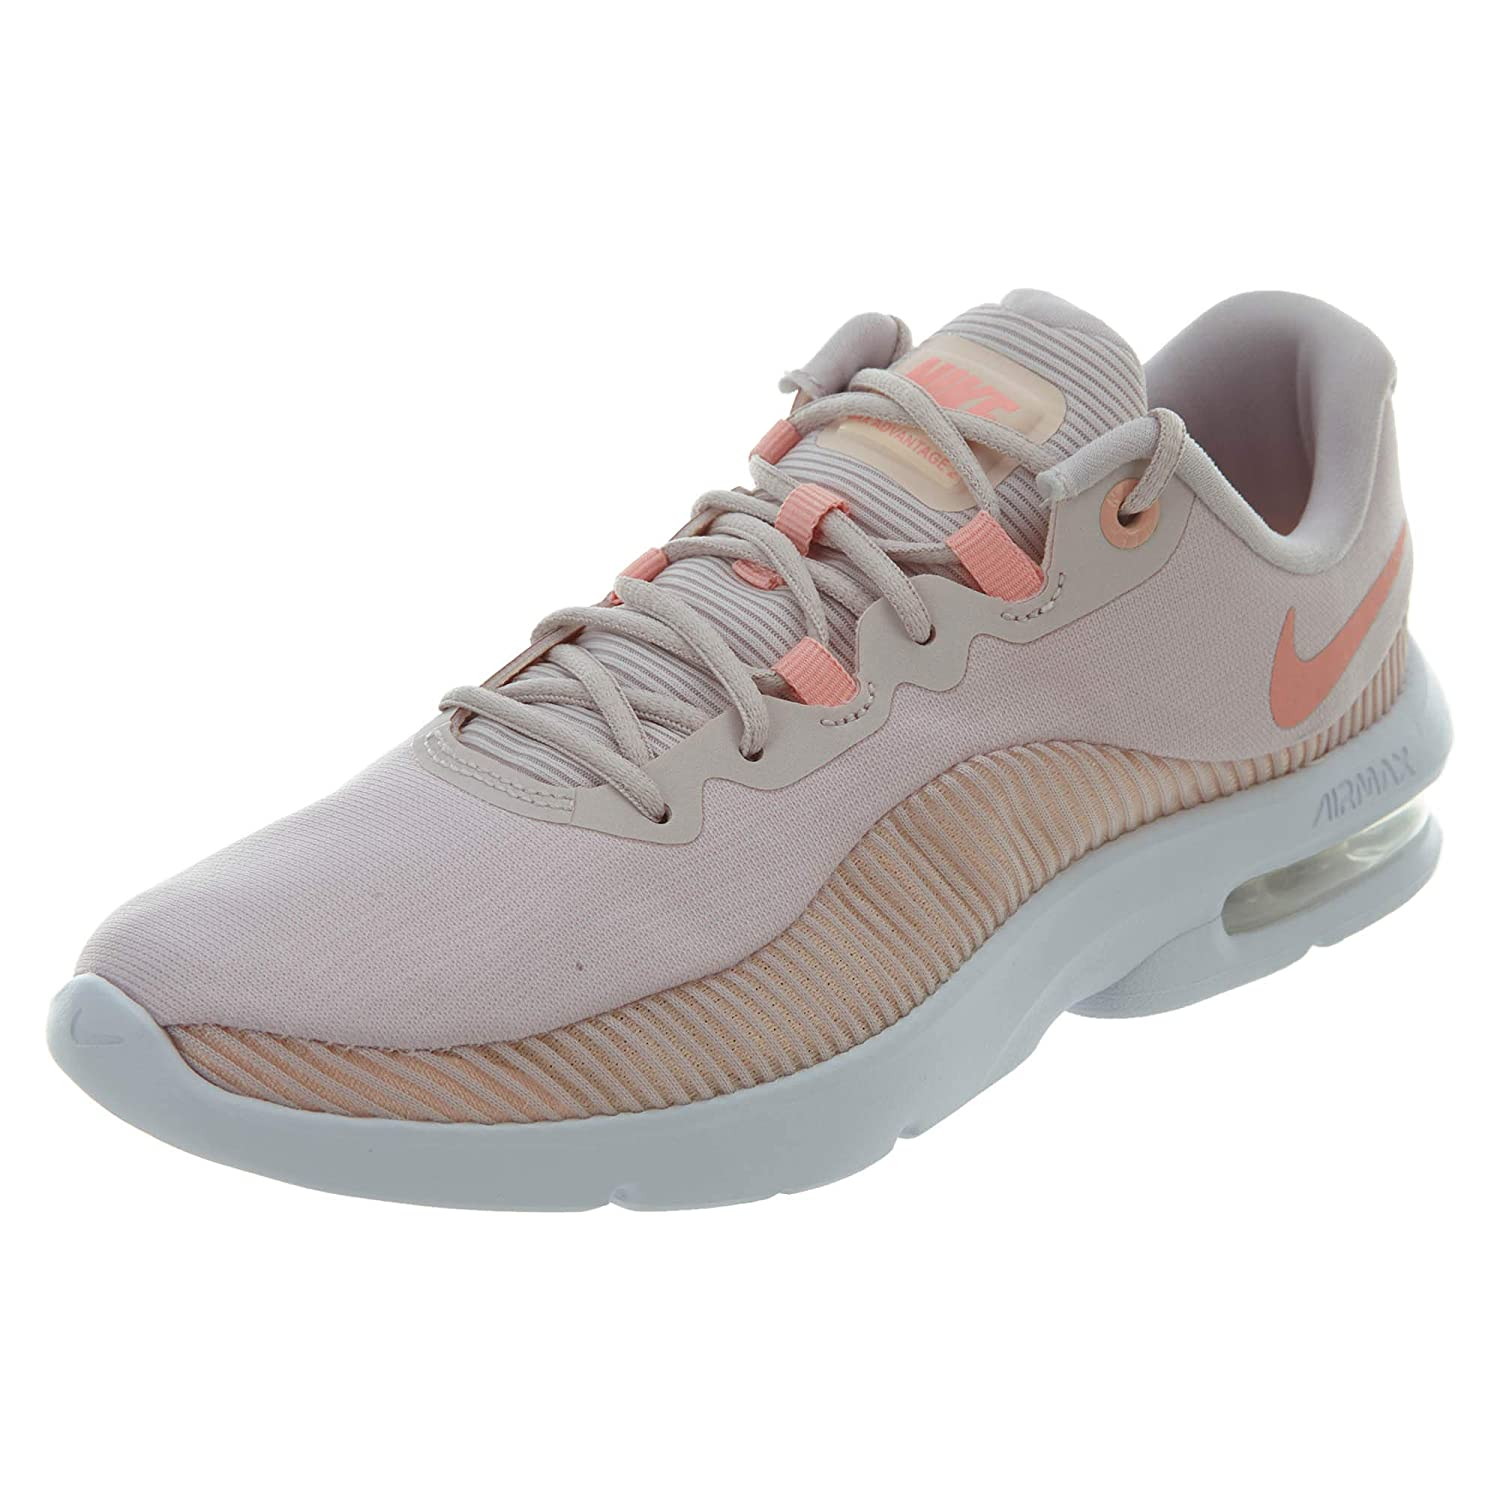 MultiCouleure (Barely Rose Oracle rose Crimson Tint 600) 36 EU Nike WMNS Air Max Advantage 2, Chaussures de FonctionneHommest Compétition Femme